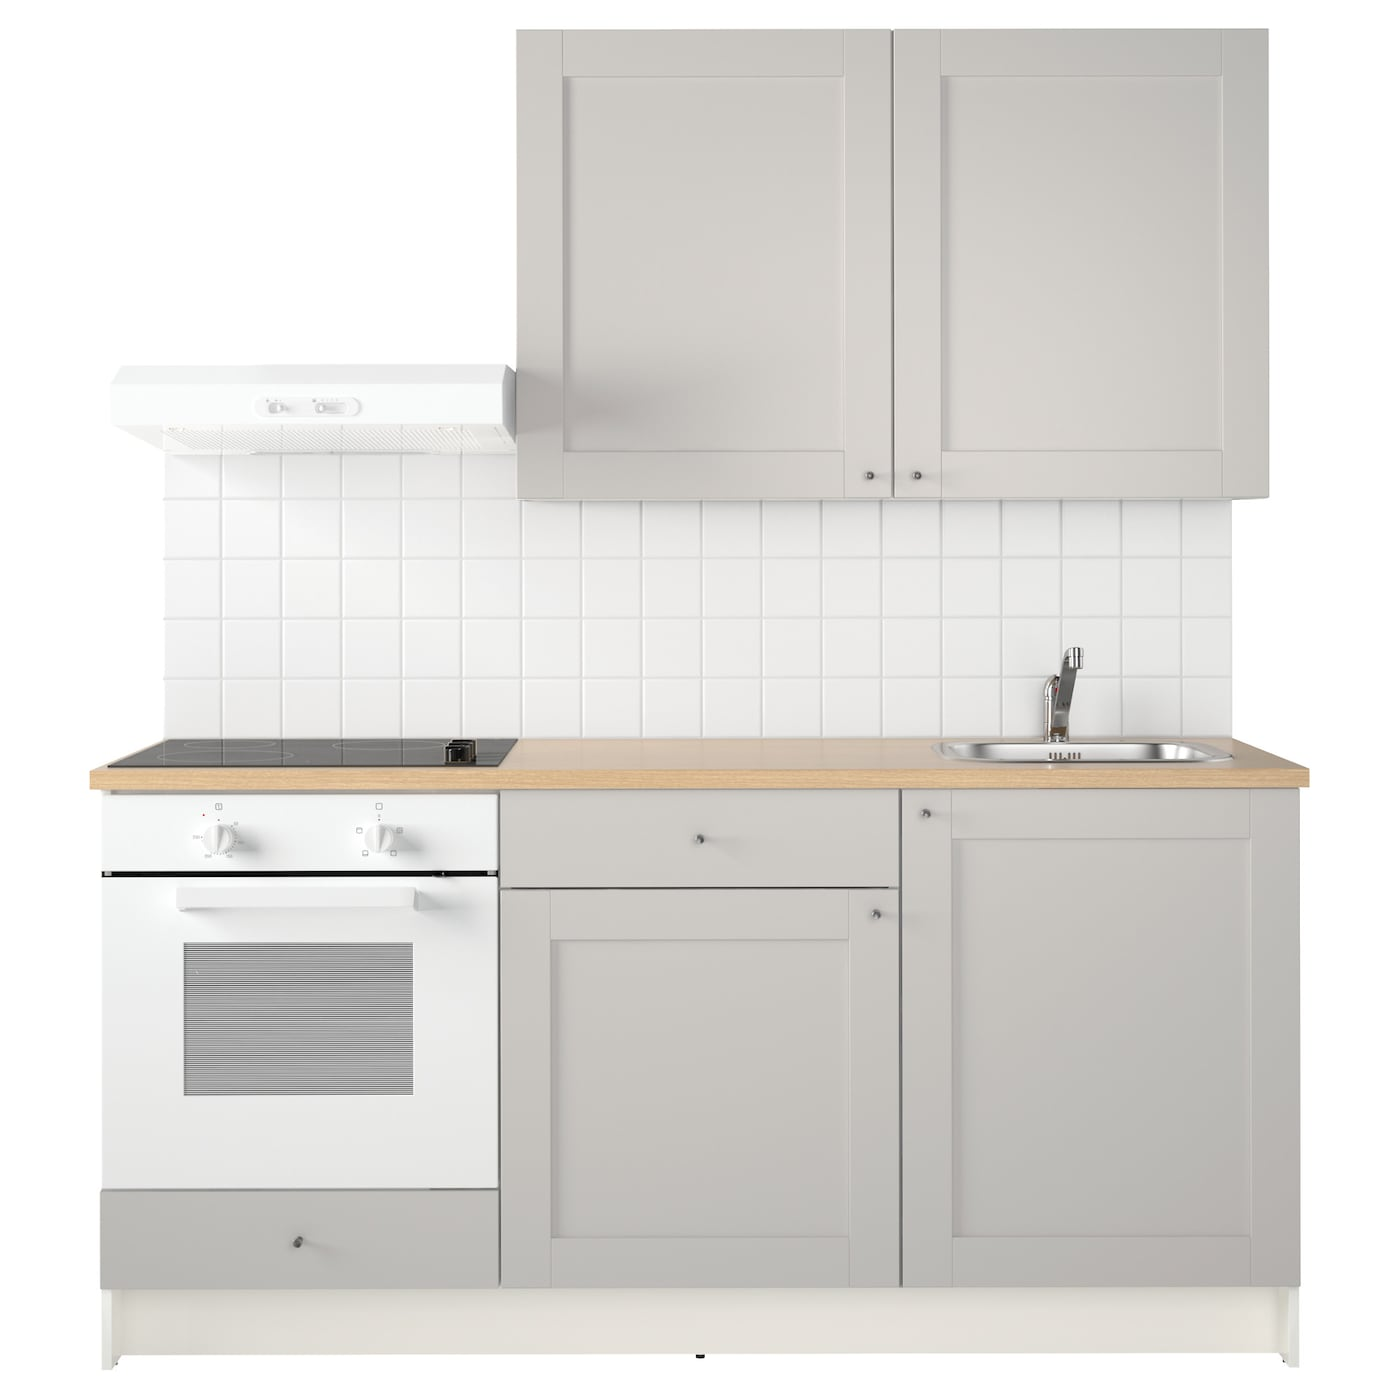 Modular kitchens modular kitchen units ikea for Ikea küchenzeile